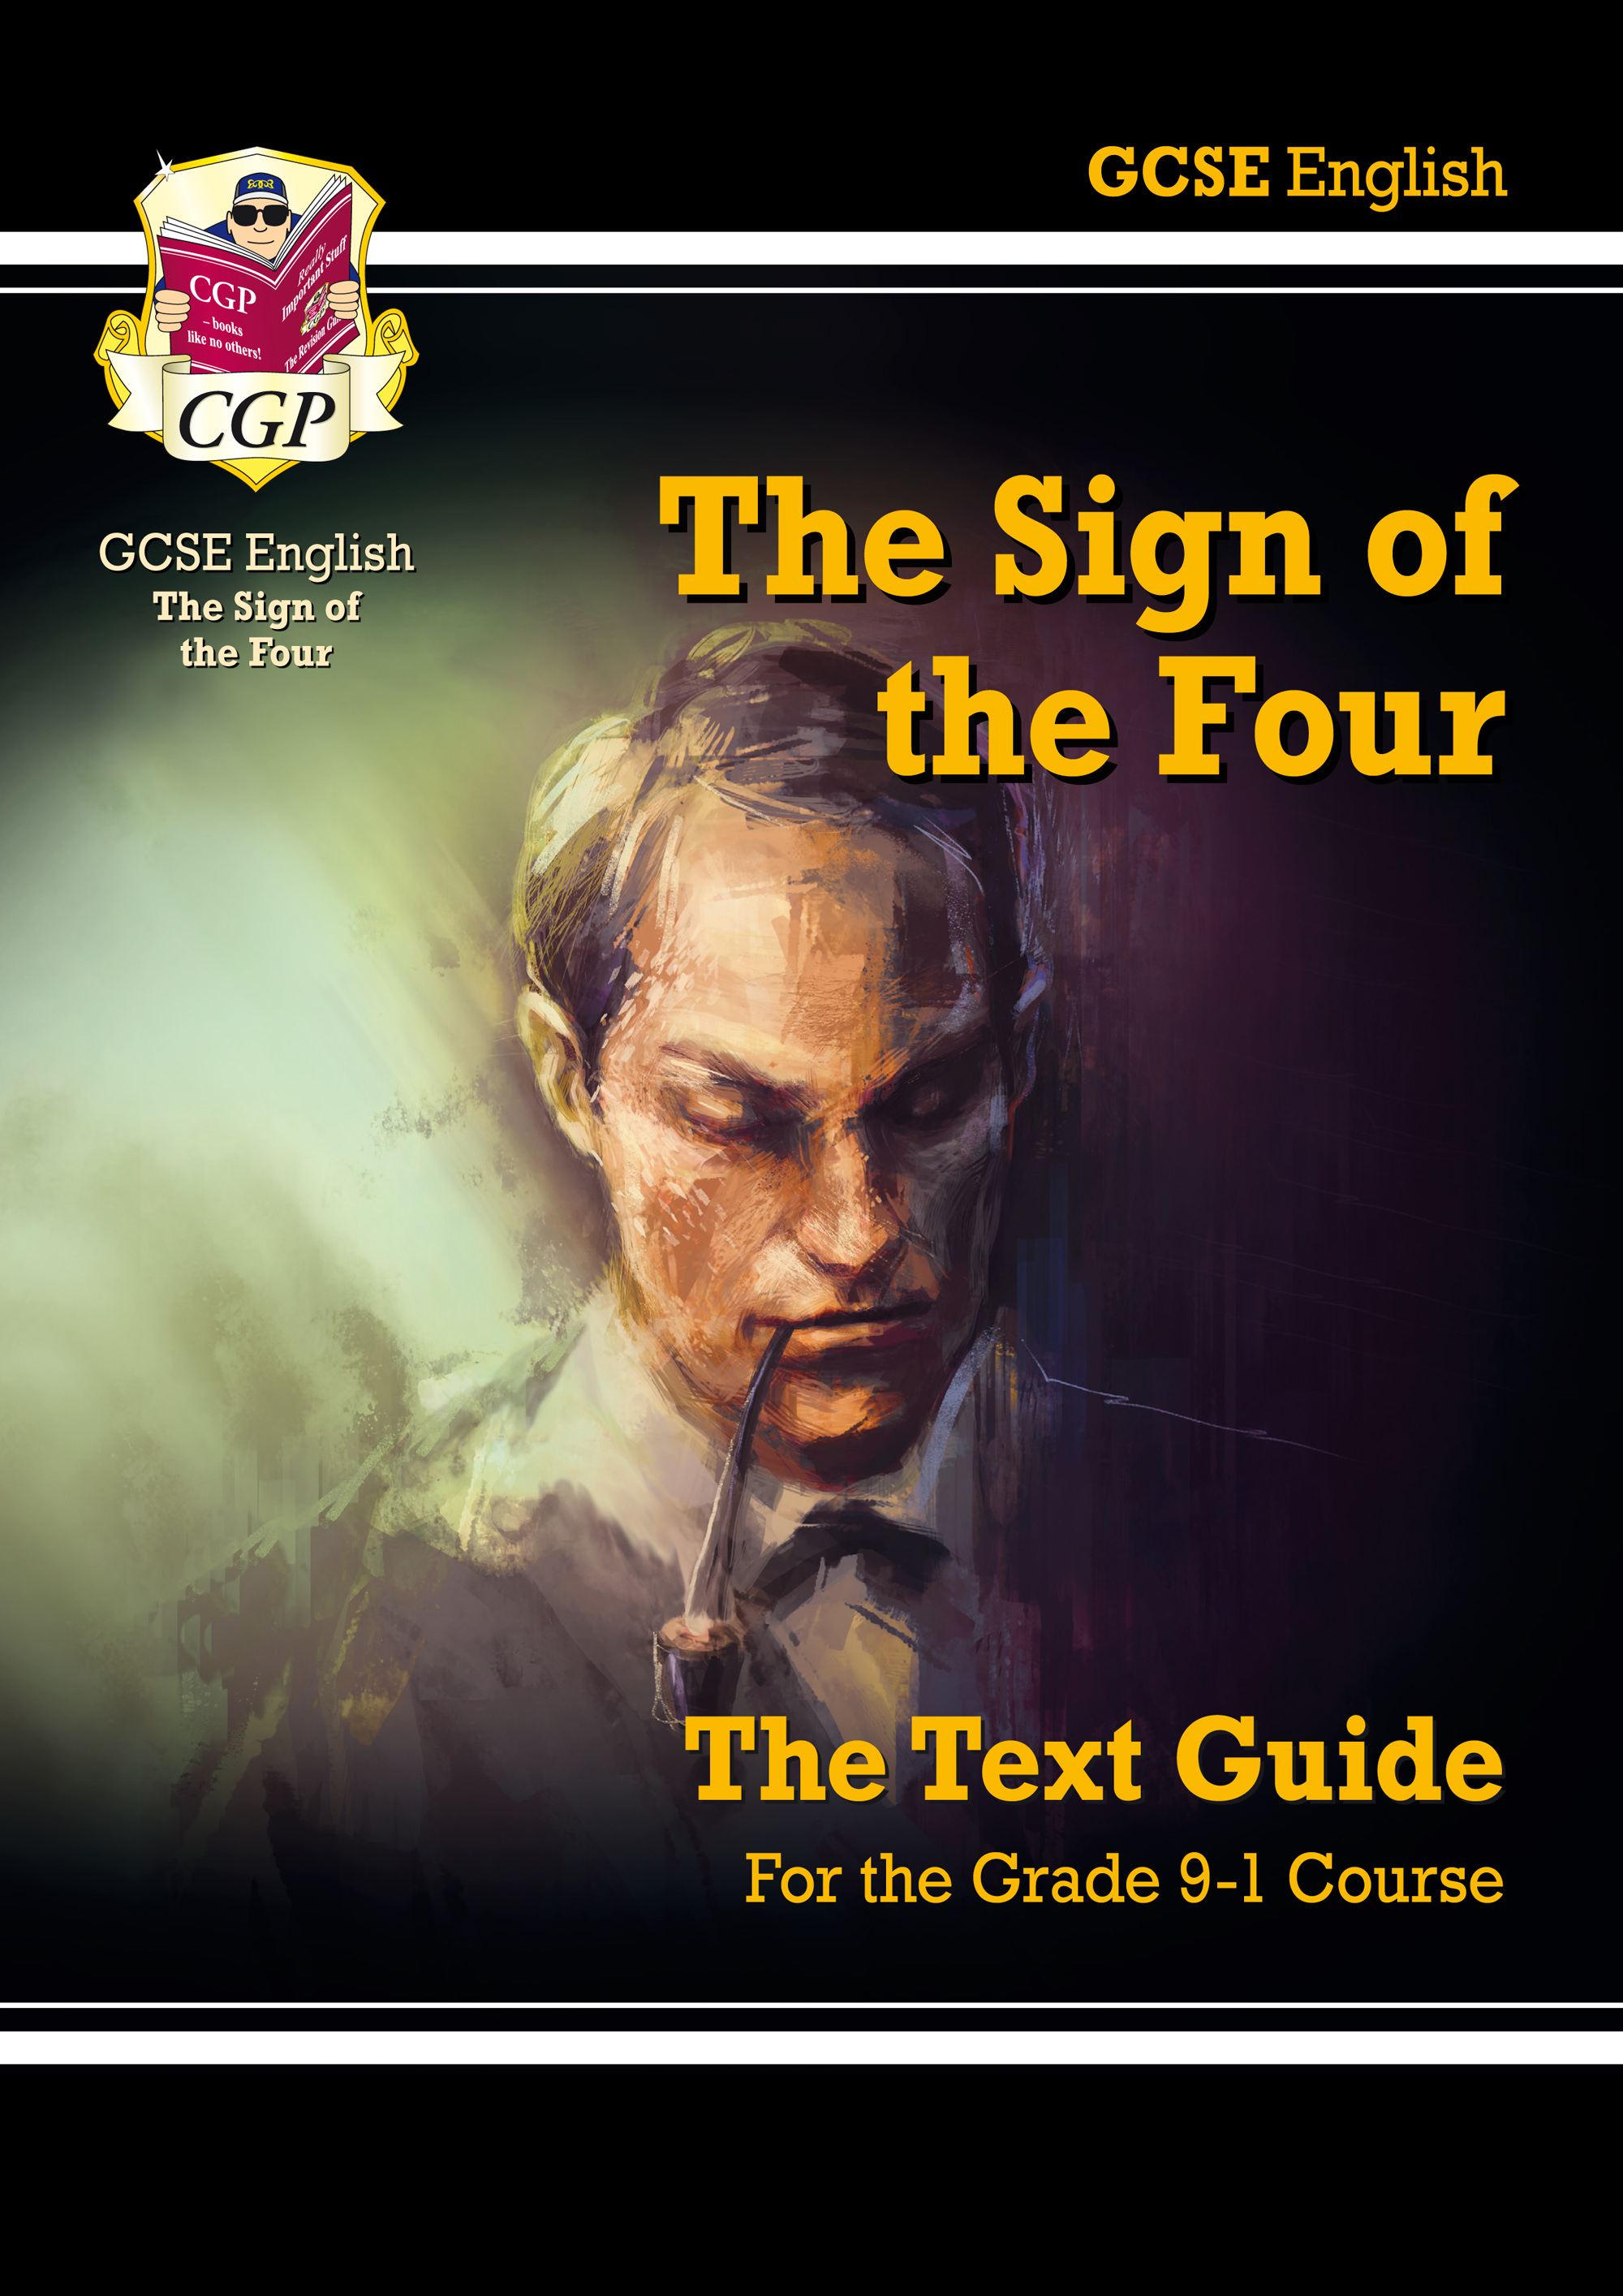 ETSF41 - Grade 9-1 GCSE English Text Guide - The Sign of the Four